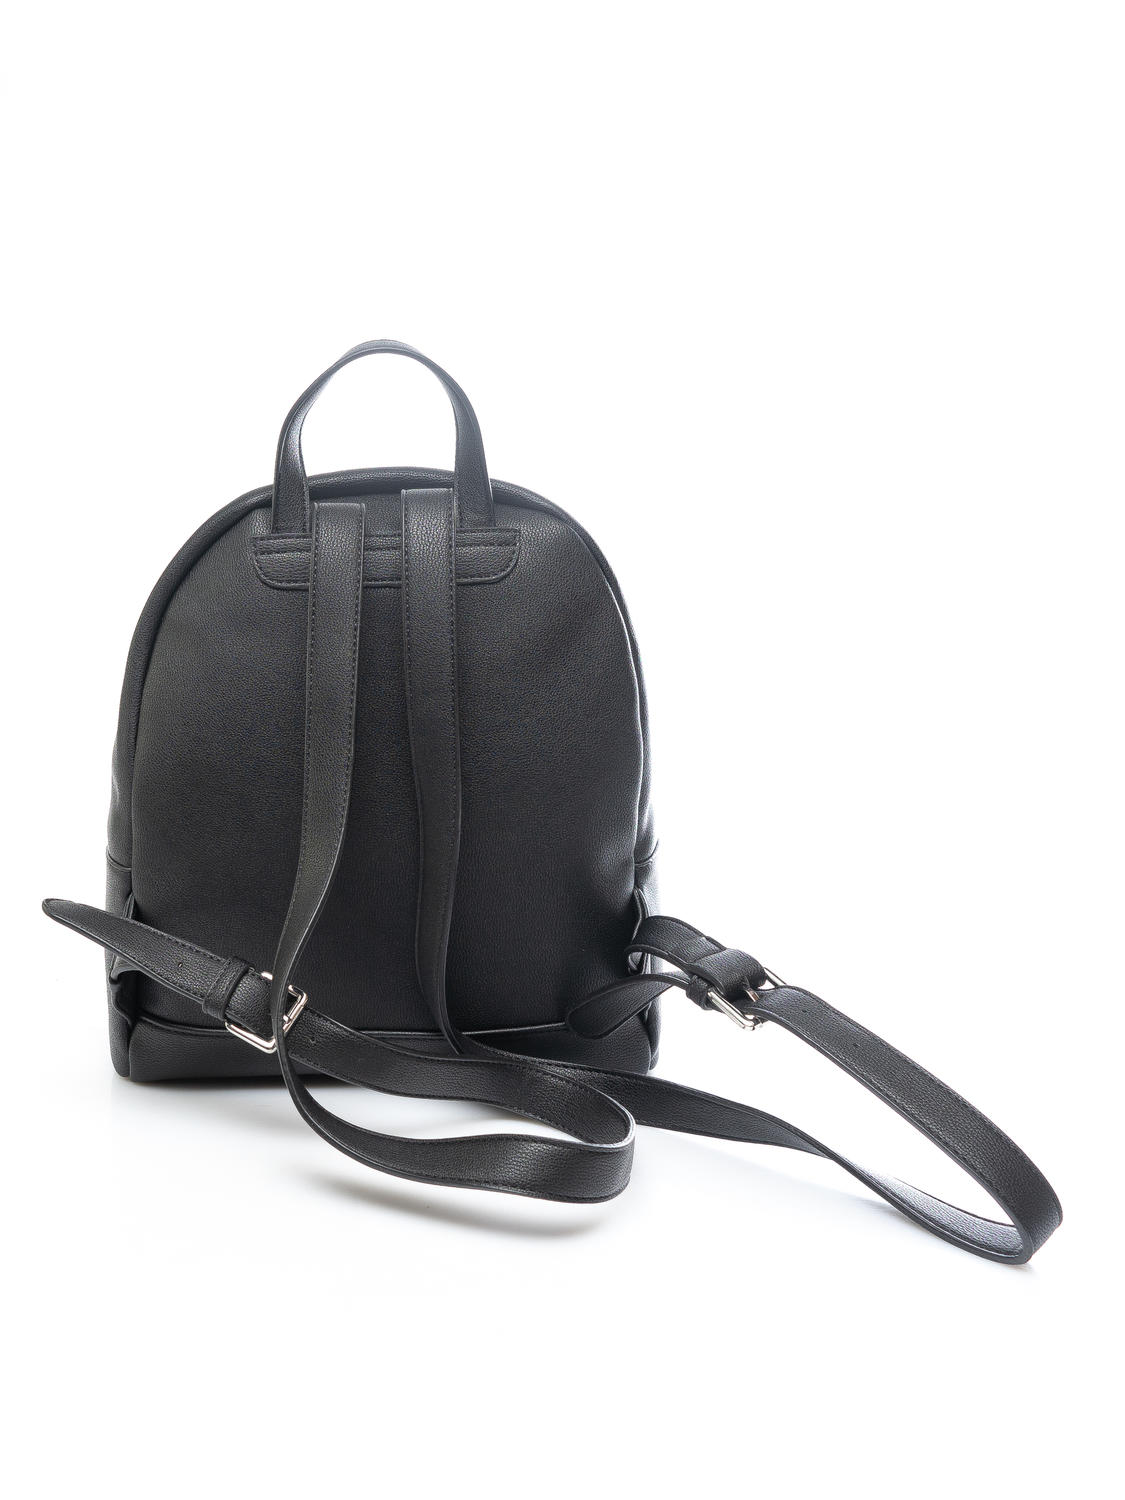 Women's Bags -  PRISCILLA Shoulder backpack